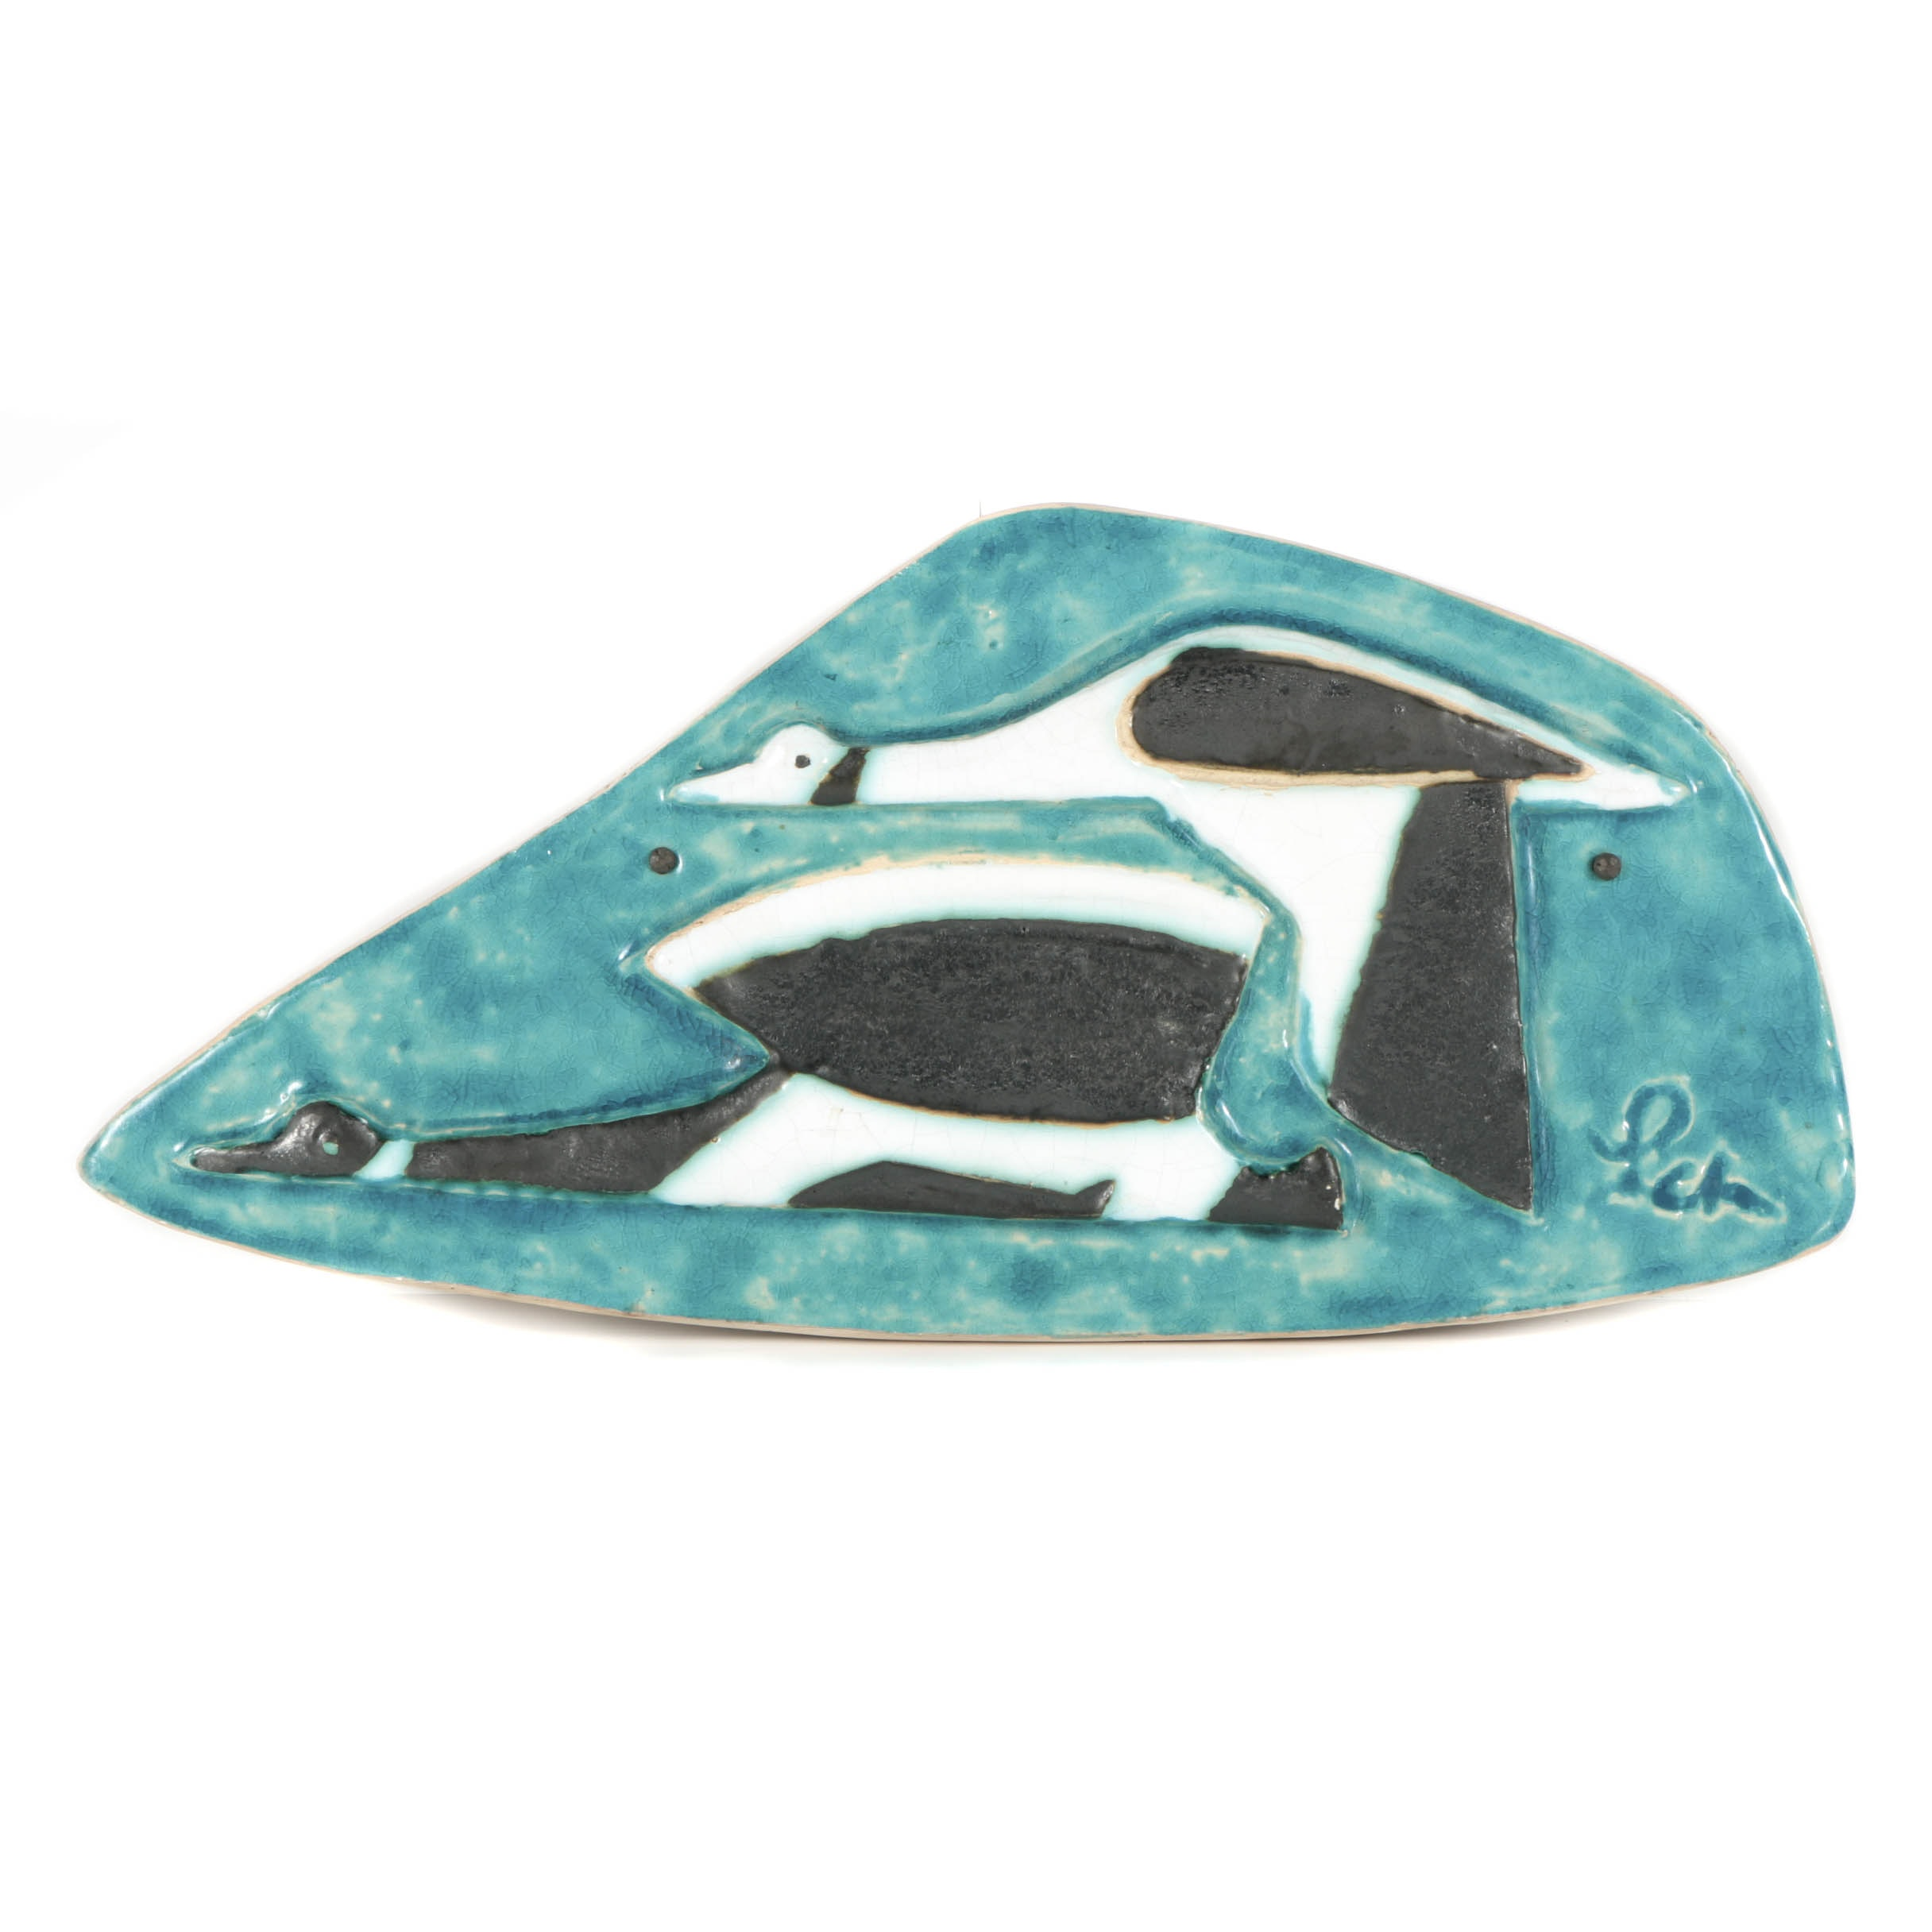 Helmut Schäffenacker Ceramic Wall Plaque of Stylized Ducks